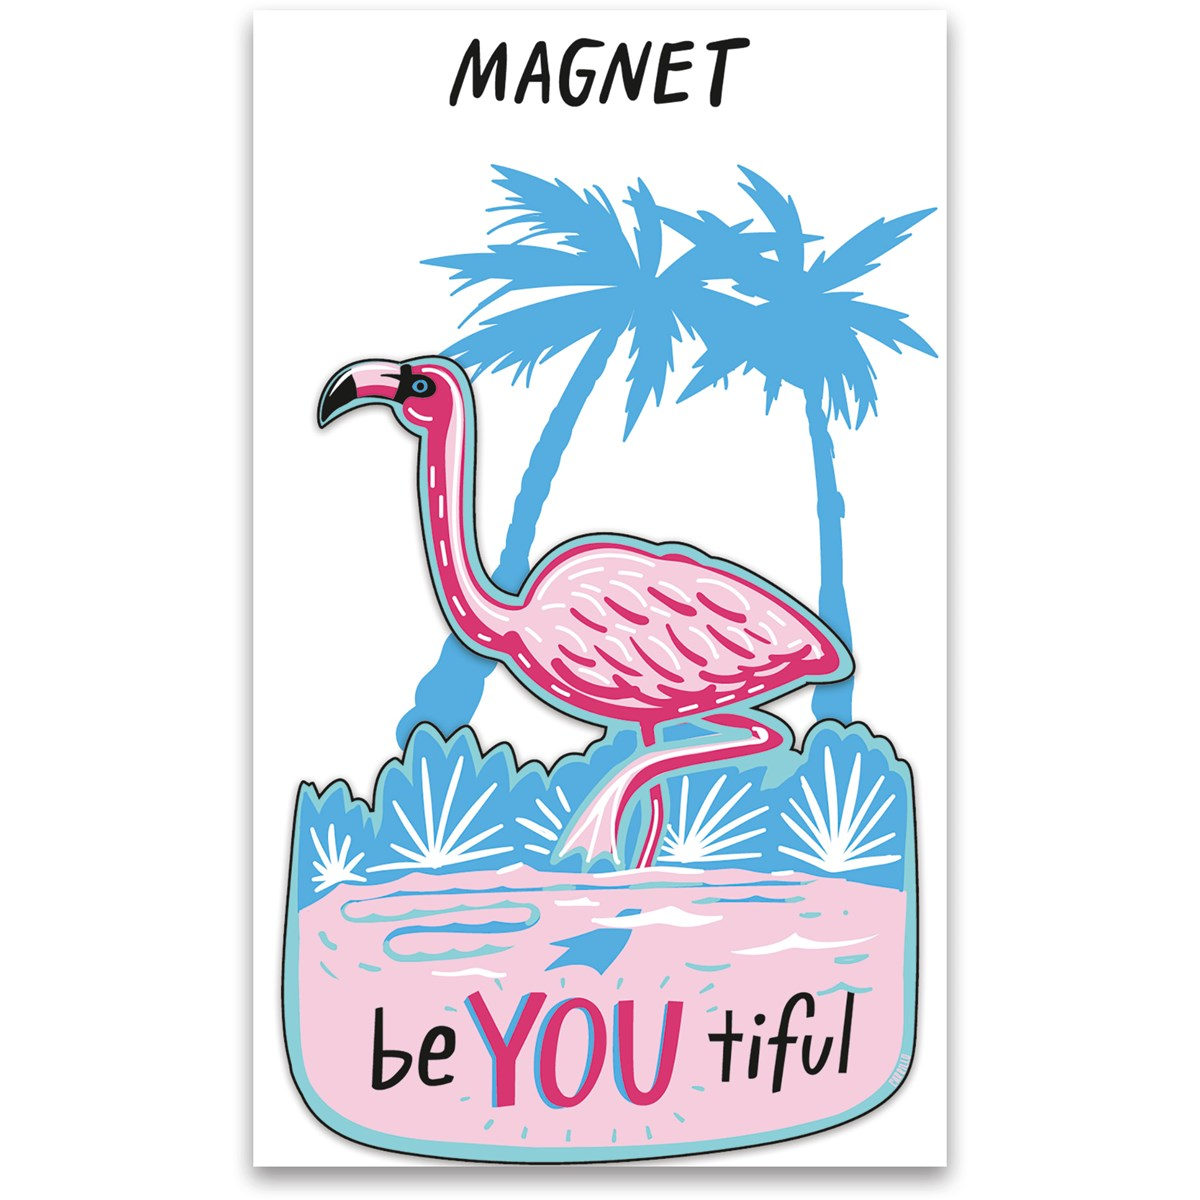 "Magnet - Be YOU Tiful - 3"" x 3.75"", Card: 3"" x 5"" - Magnet, Paper"